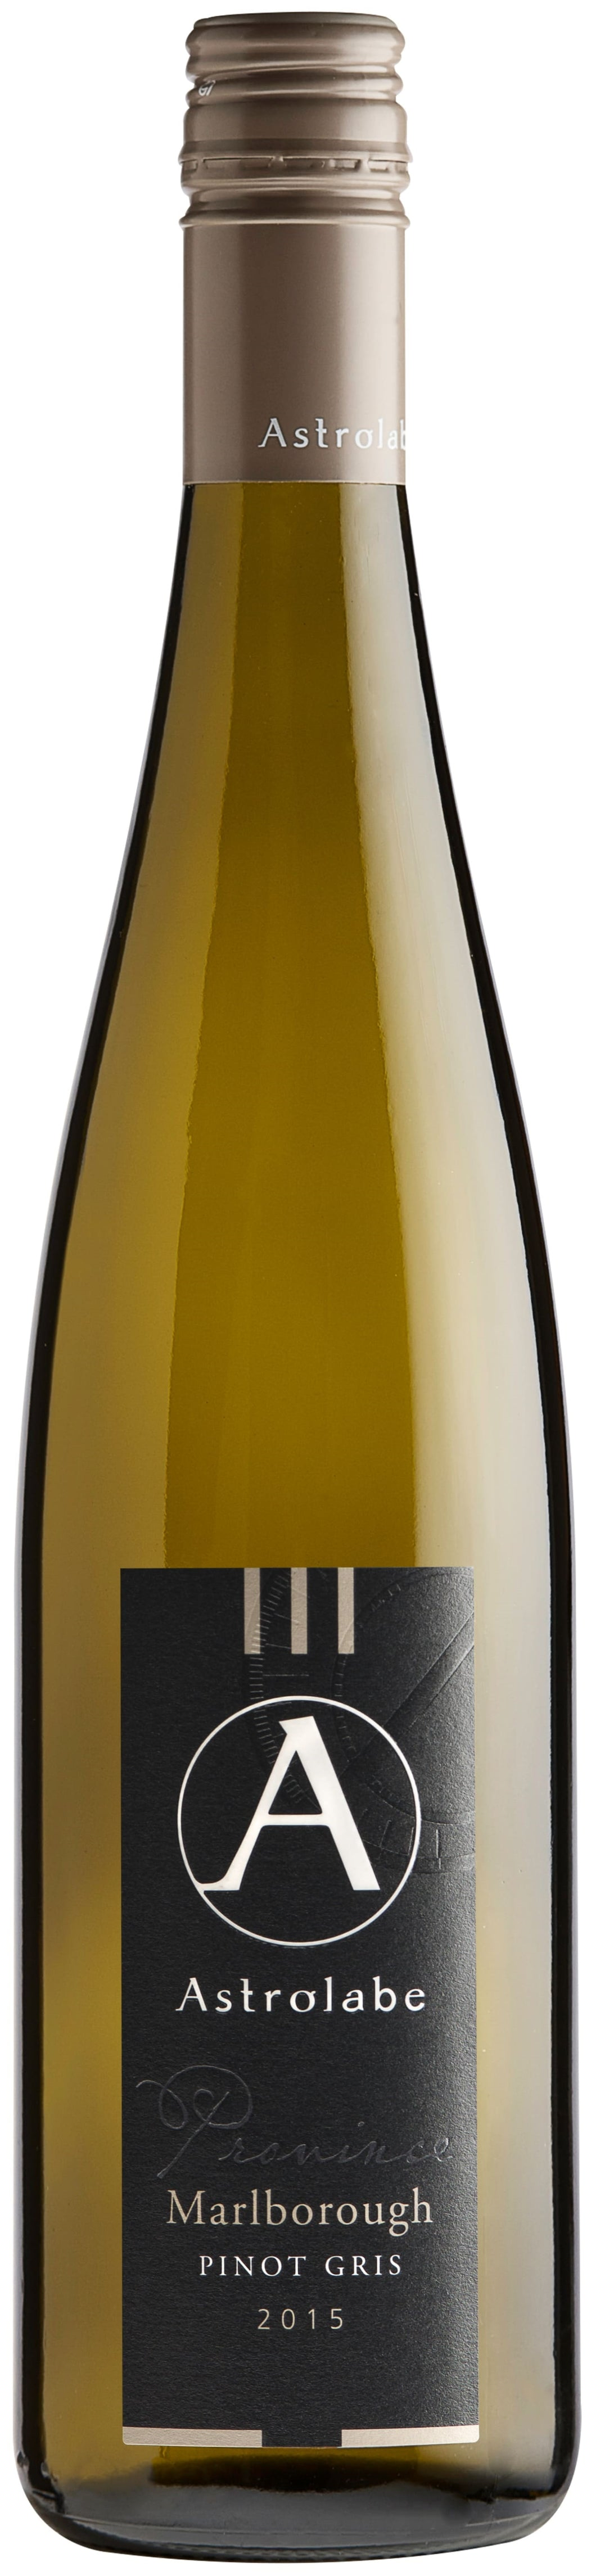 Astrolabe Pinot Gris Province 2015